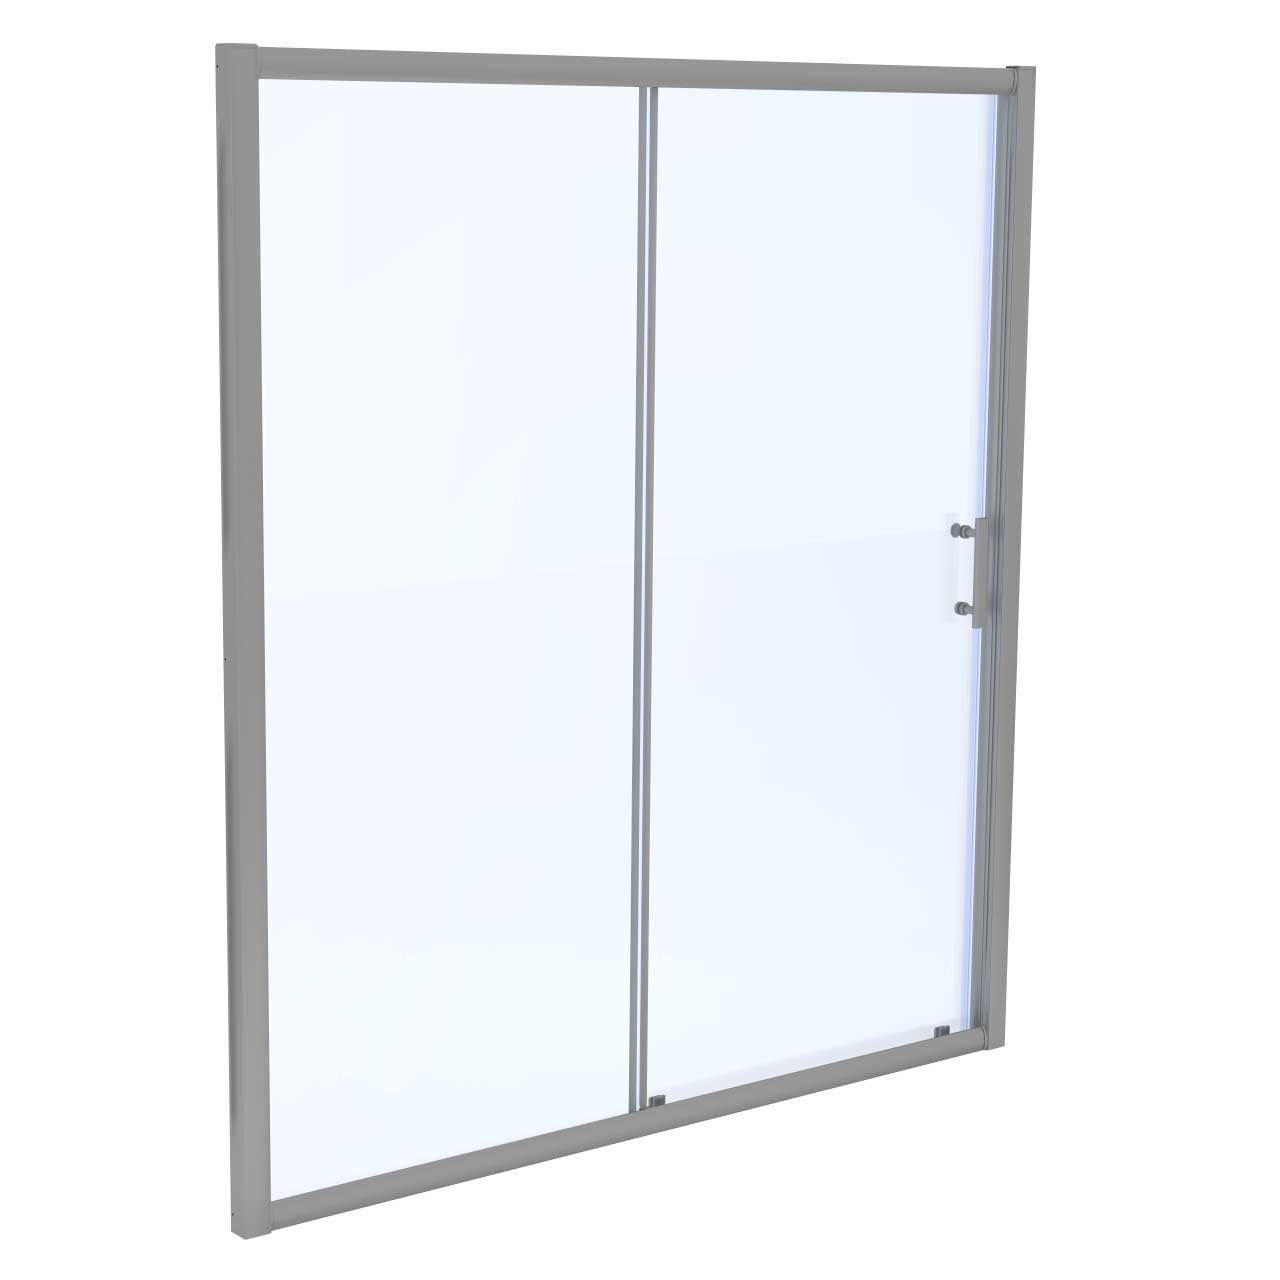 Series 8 1700 x 800 Sliding Door Enclosure